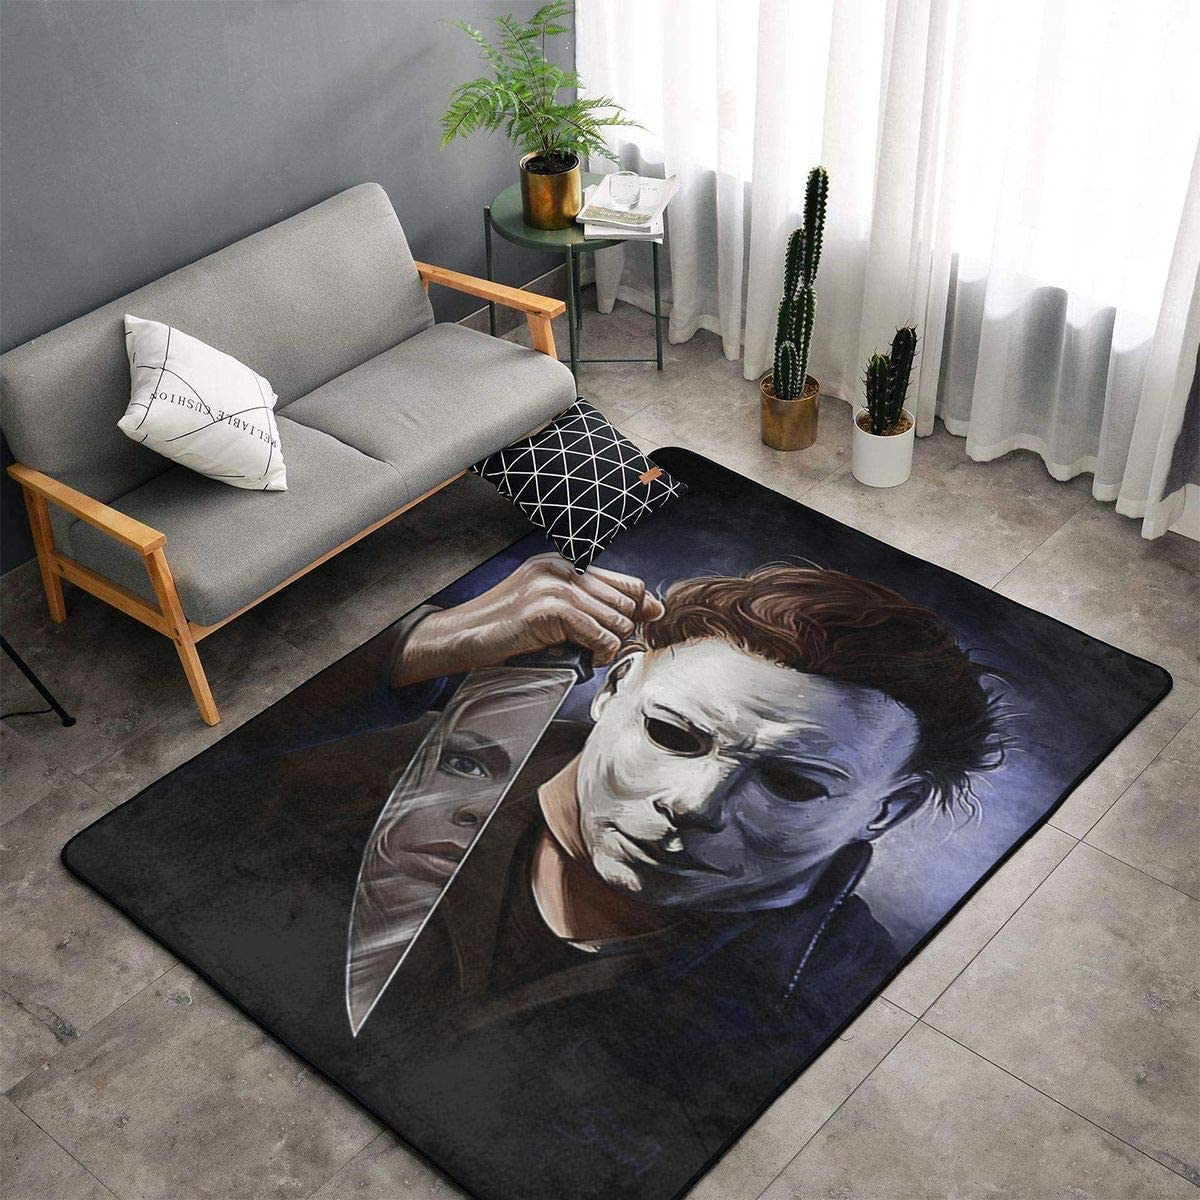 Snanna Michael Myers Ultra Soft Non-Slip Carpets Indoor Home Decorate Rugs Floor Carpets for Living Room Bedroom 60 X 39 in